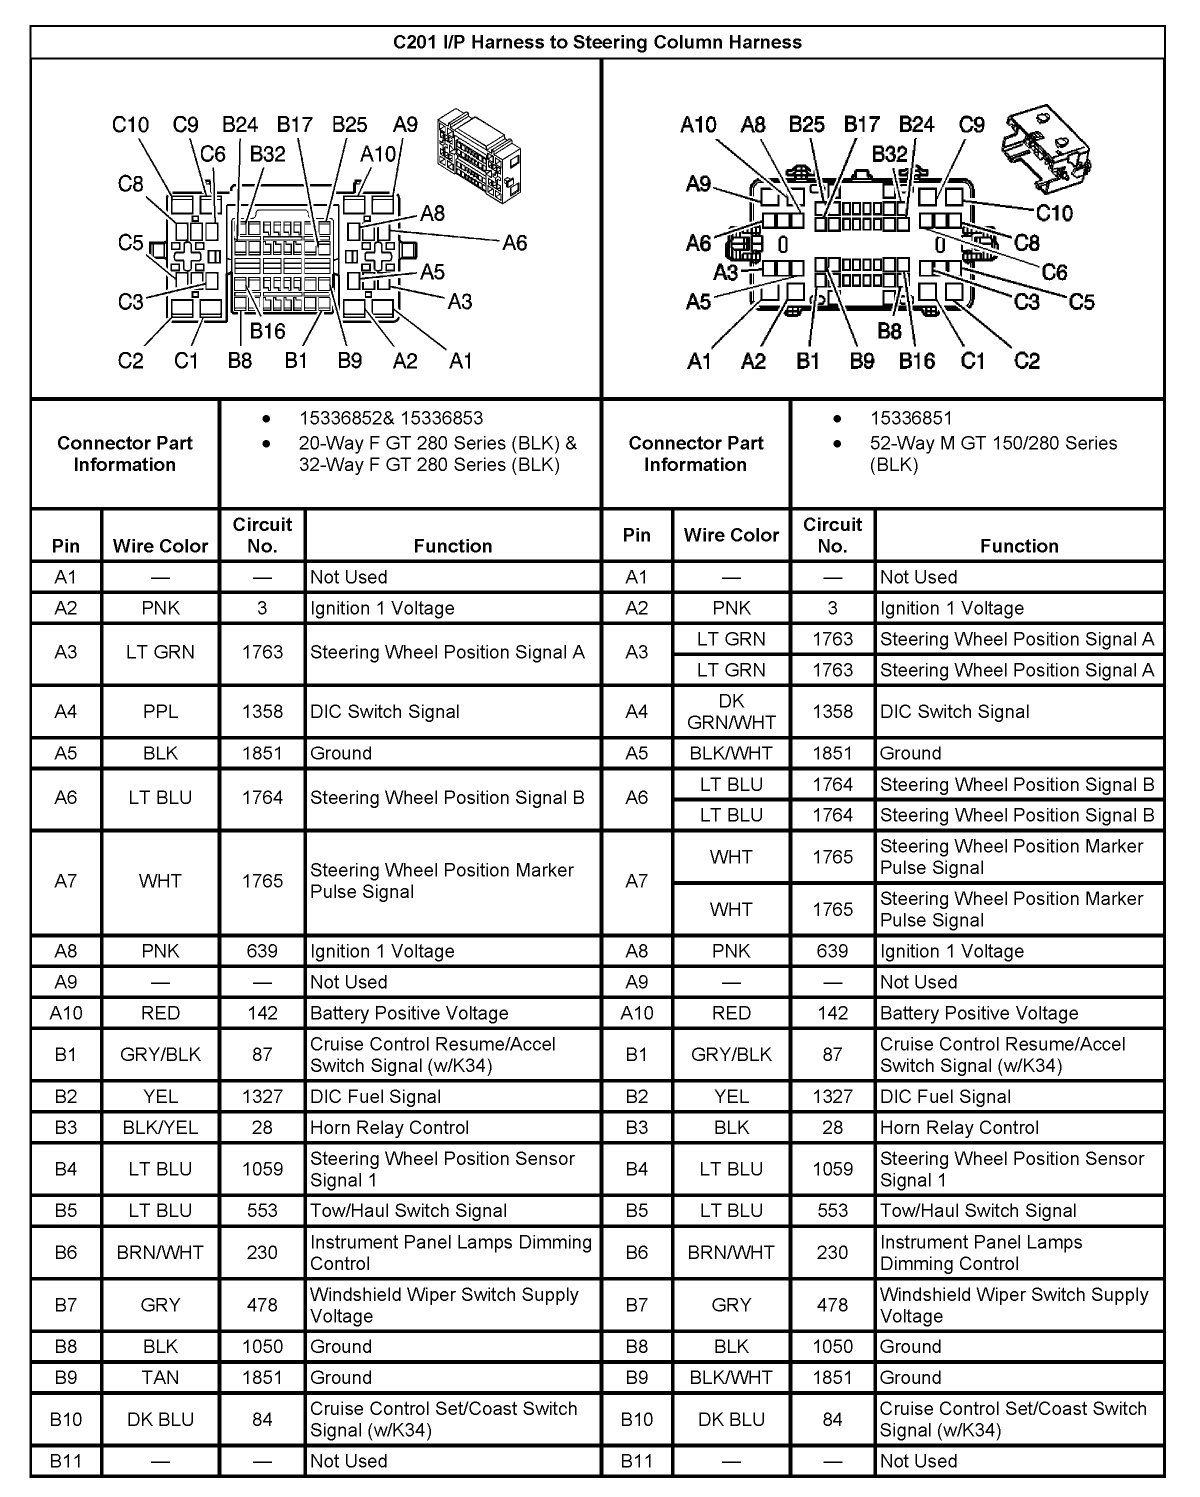 2004 gm radio wiring diagram gm radio wiring diagram alfa romeo gt diagrams 2004 gmc sierra radio wiring diagram | free wiring diagram